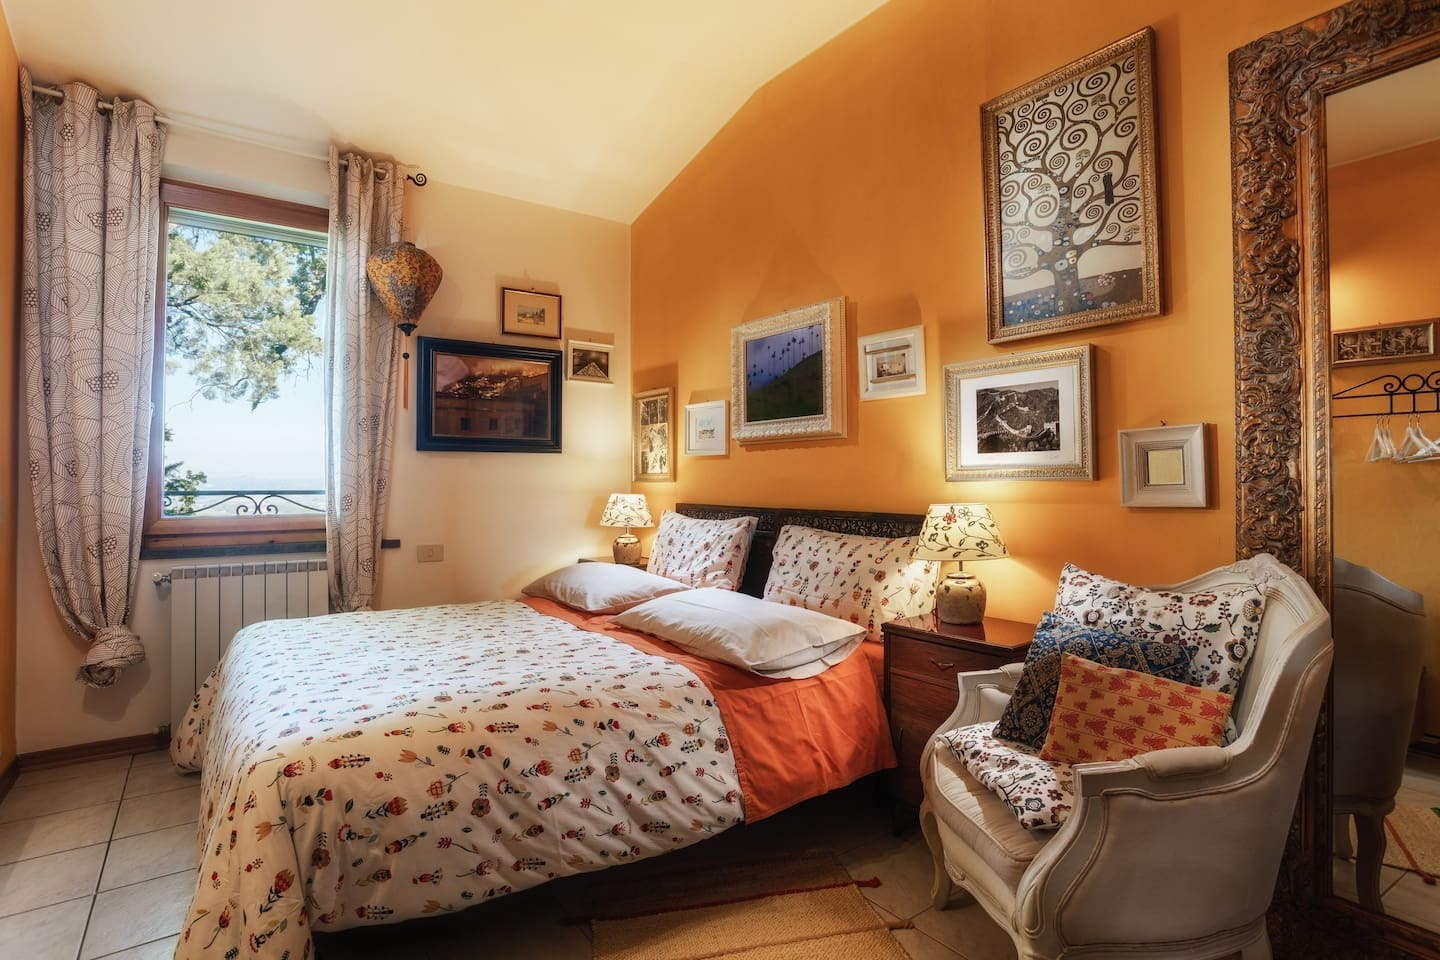 Your Room, Early Evening Atmosphere #1